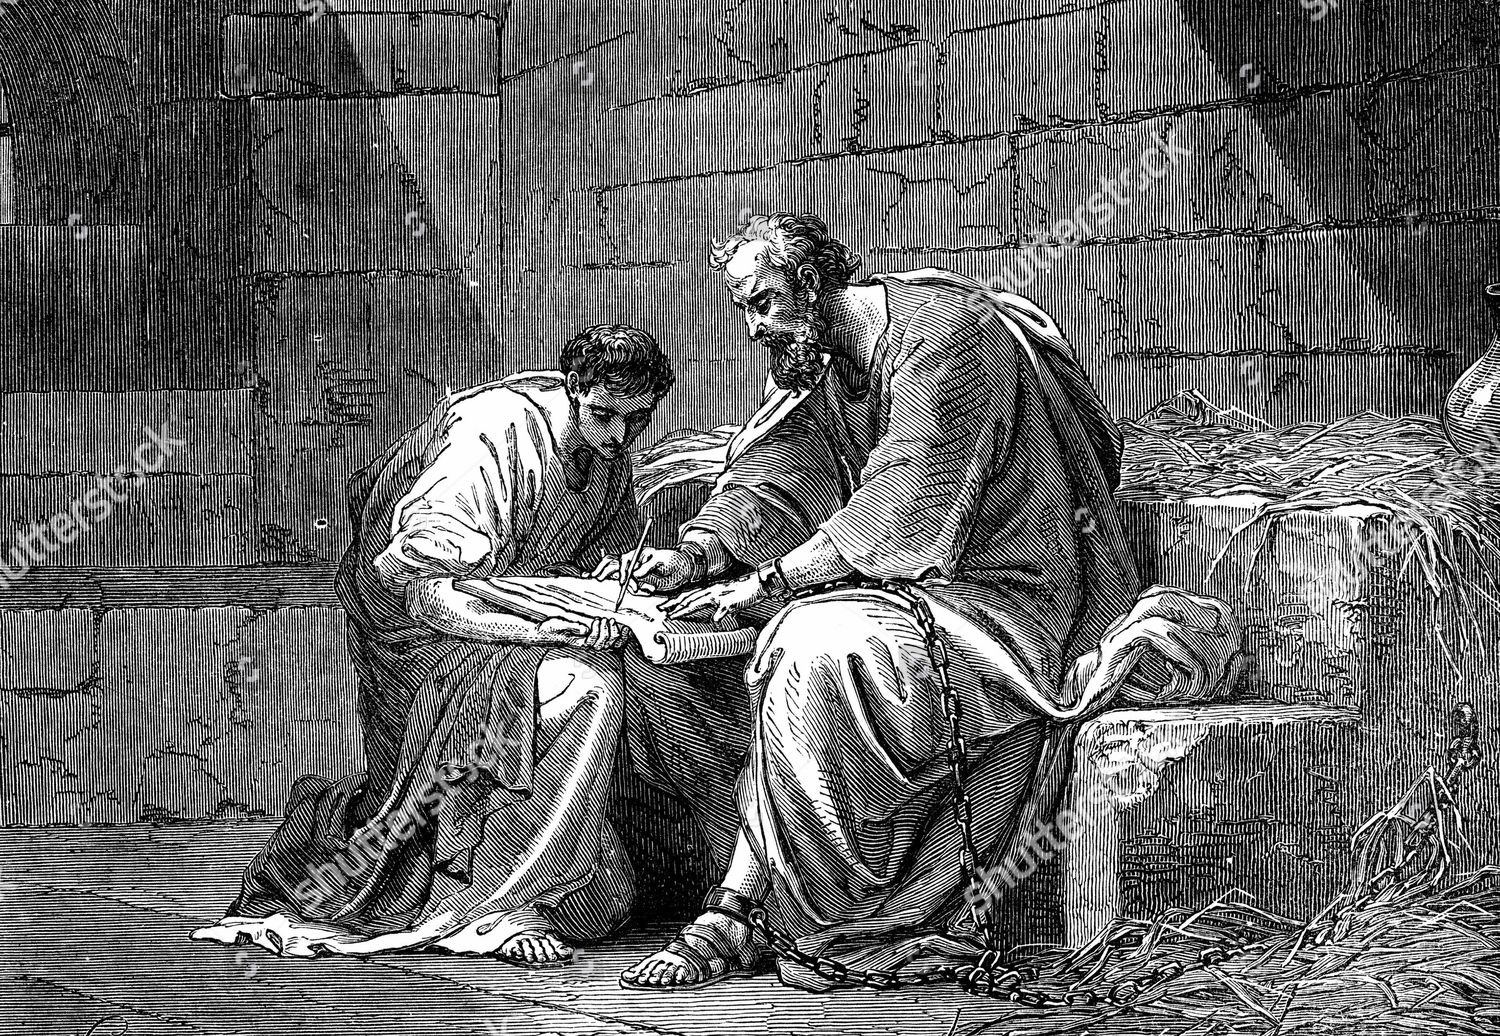 the apostle pauls writings to the people When claudius died in 55, priscilla and aquila returned to rome and again hosted a church in their home, to whom paul sent greetings in his letter to the romans.